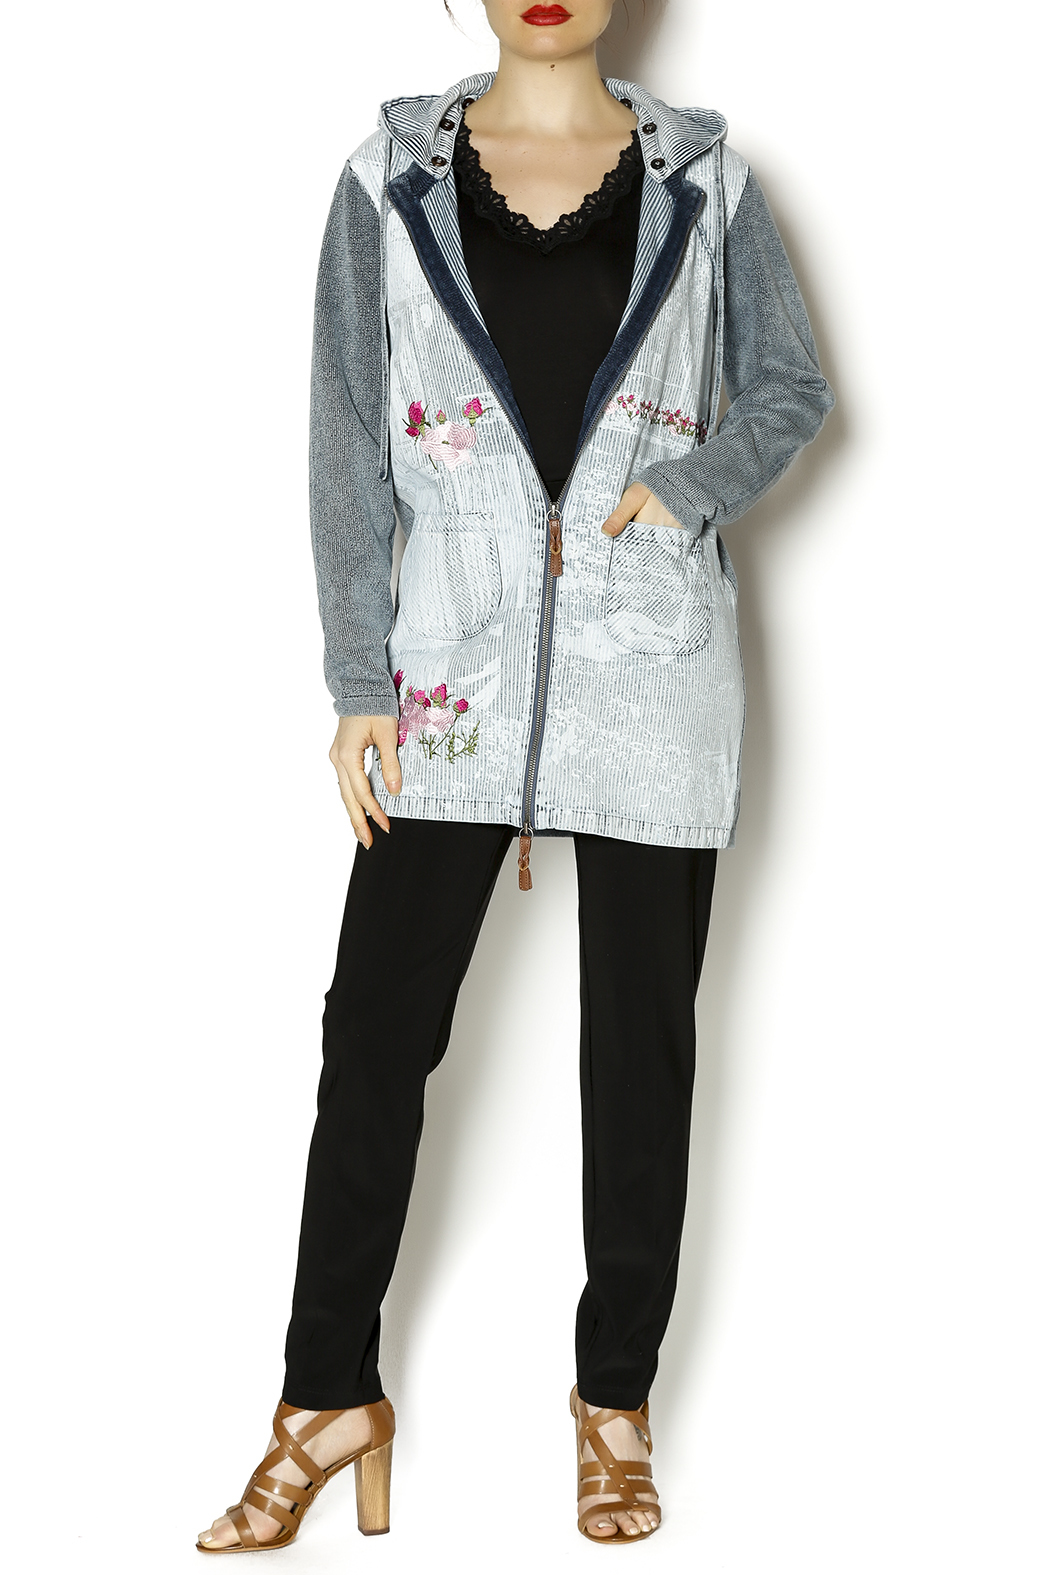 Shop for denim sweater jacket online at Target. Free shipping on purchases over $35 and save 5% every day with your Target REDcard.